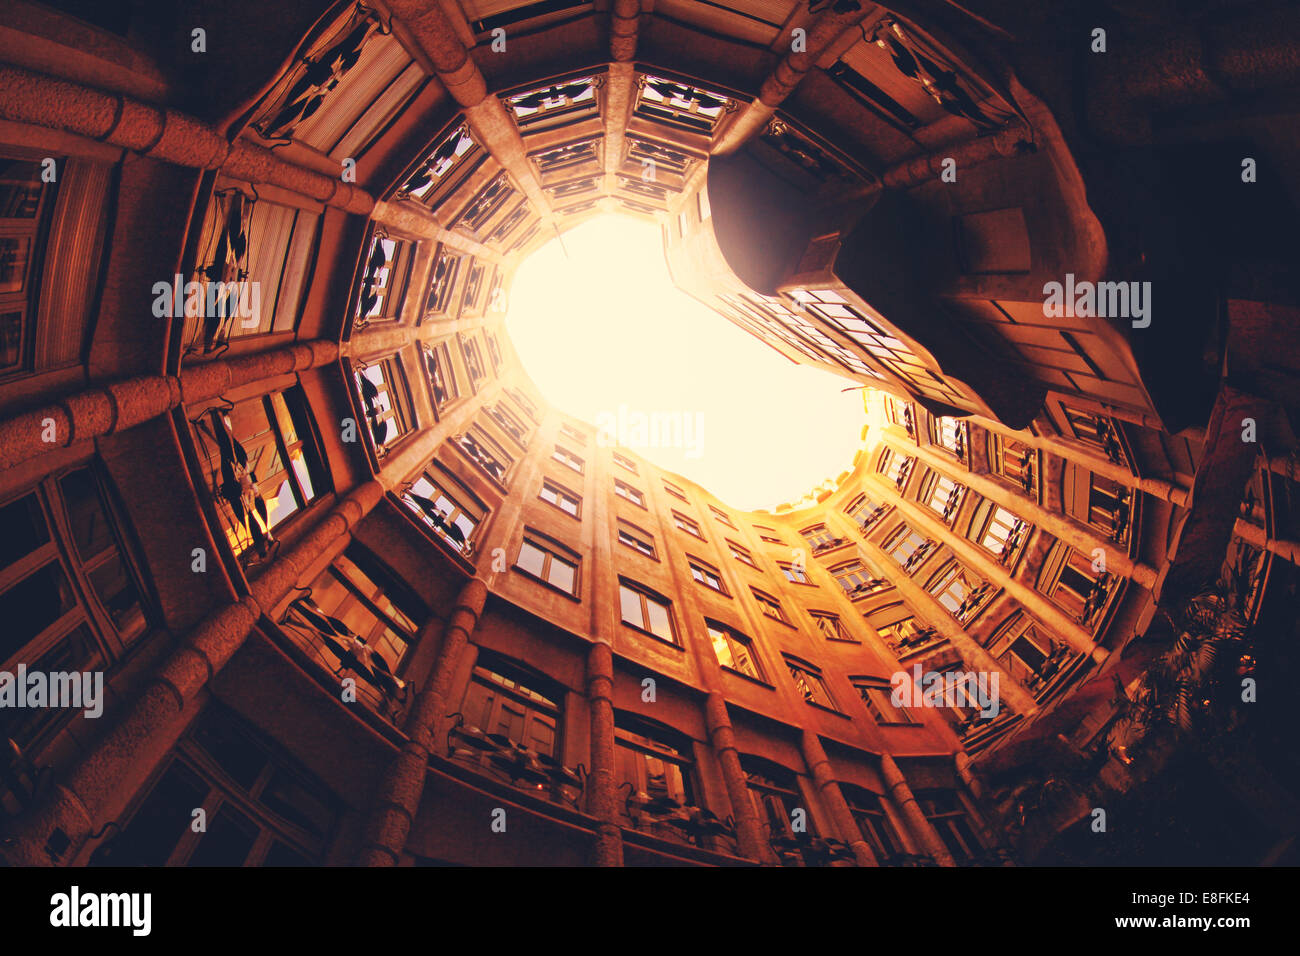 Spain, Barcelona, La Pedrera, Low angle view of building - Stock Image